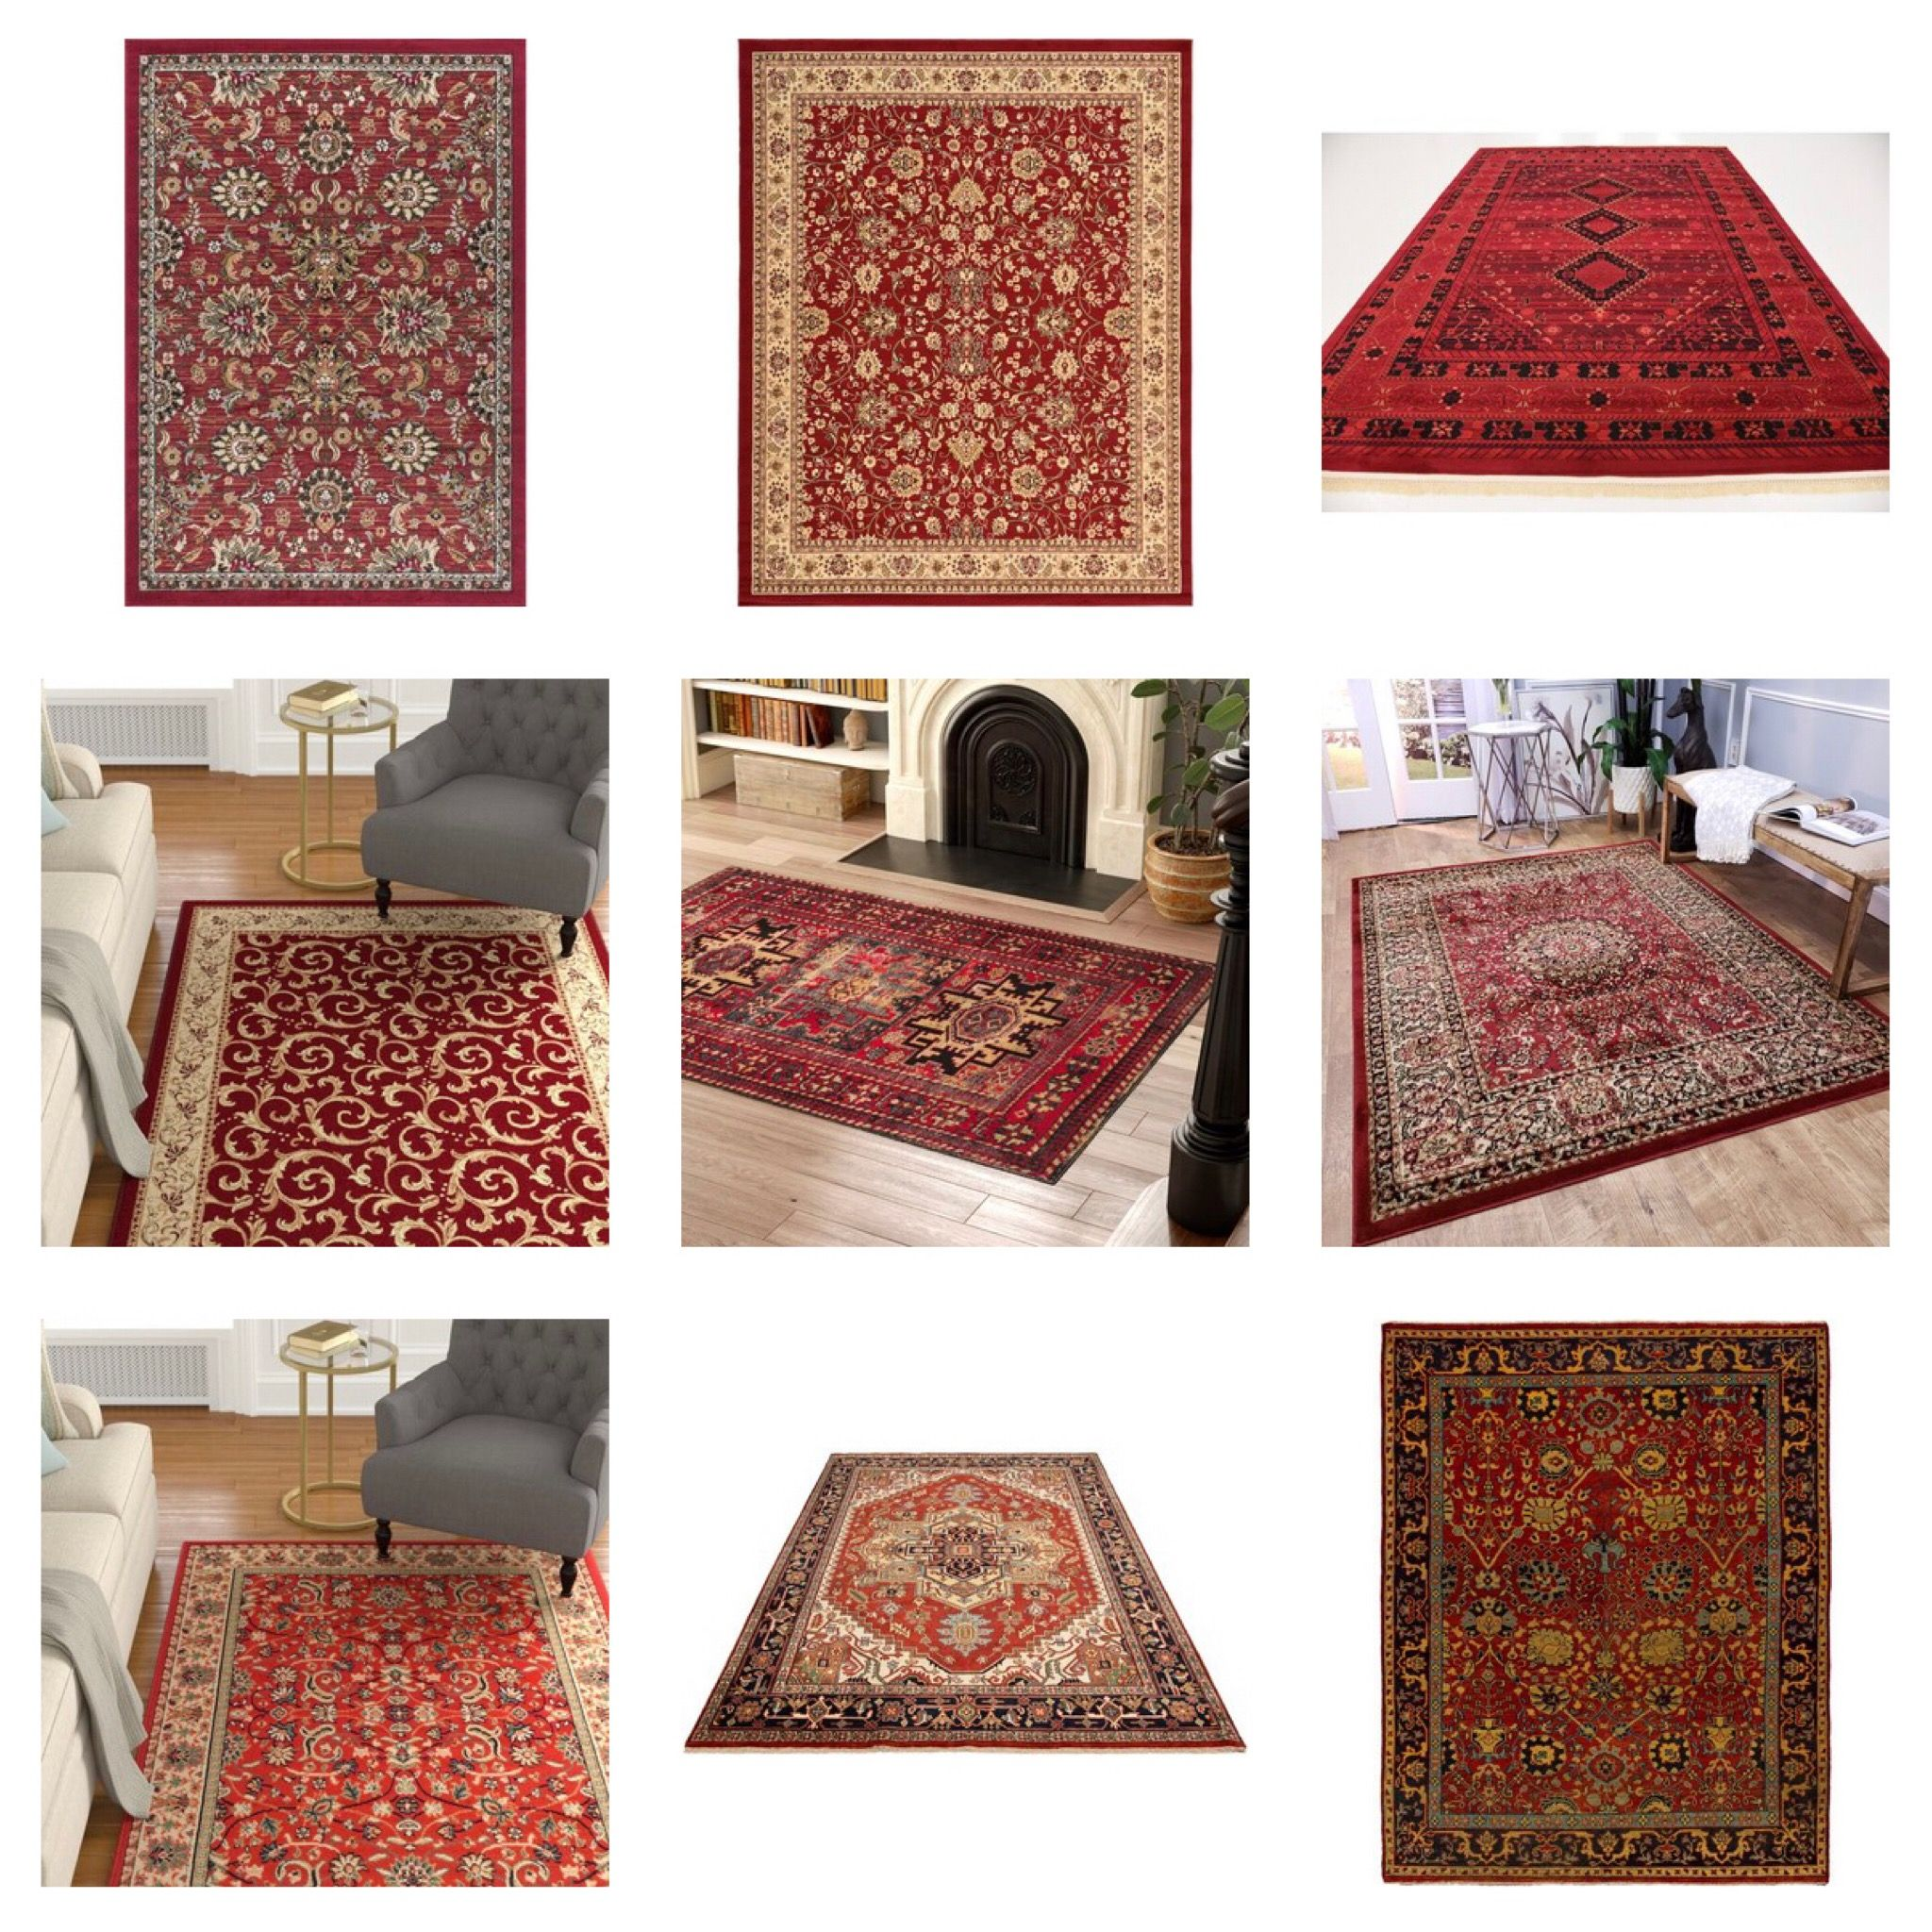 White Bedroom Ideas With Wow Factor: A Red Area Rug Can Bring The Wow Factor To Any Room